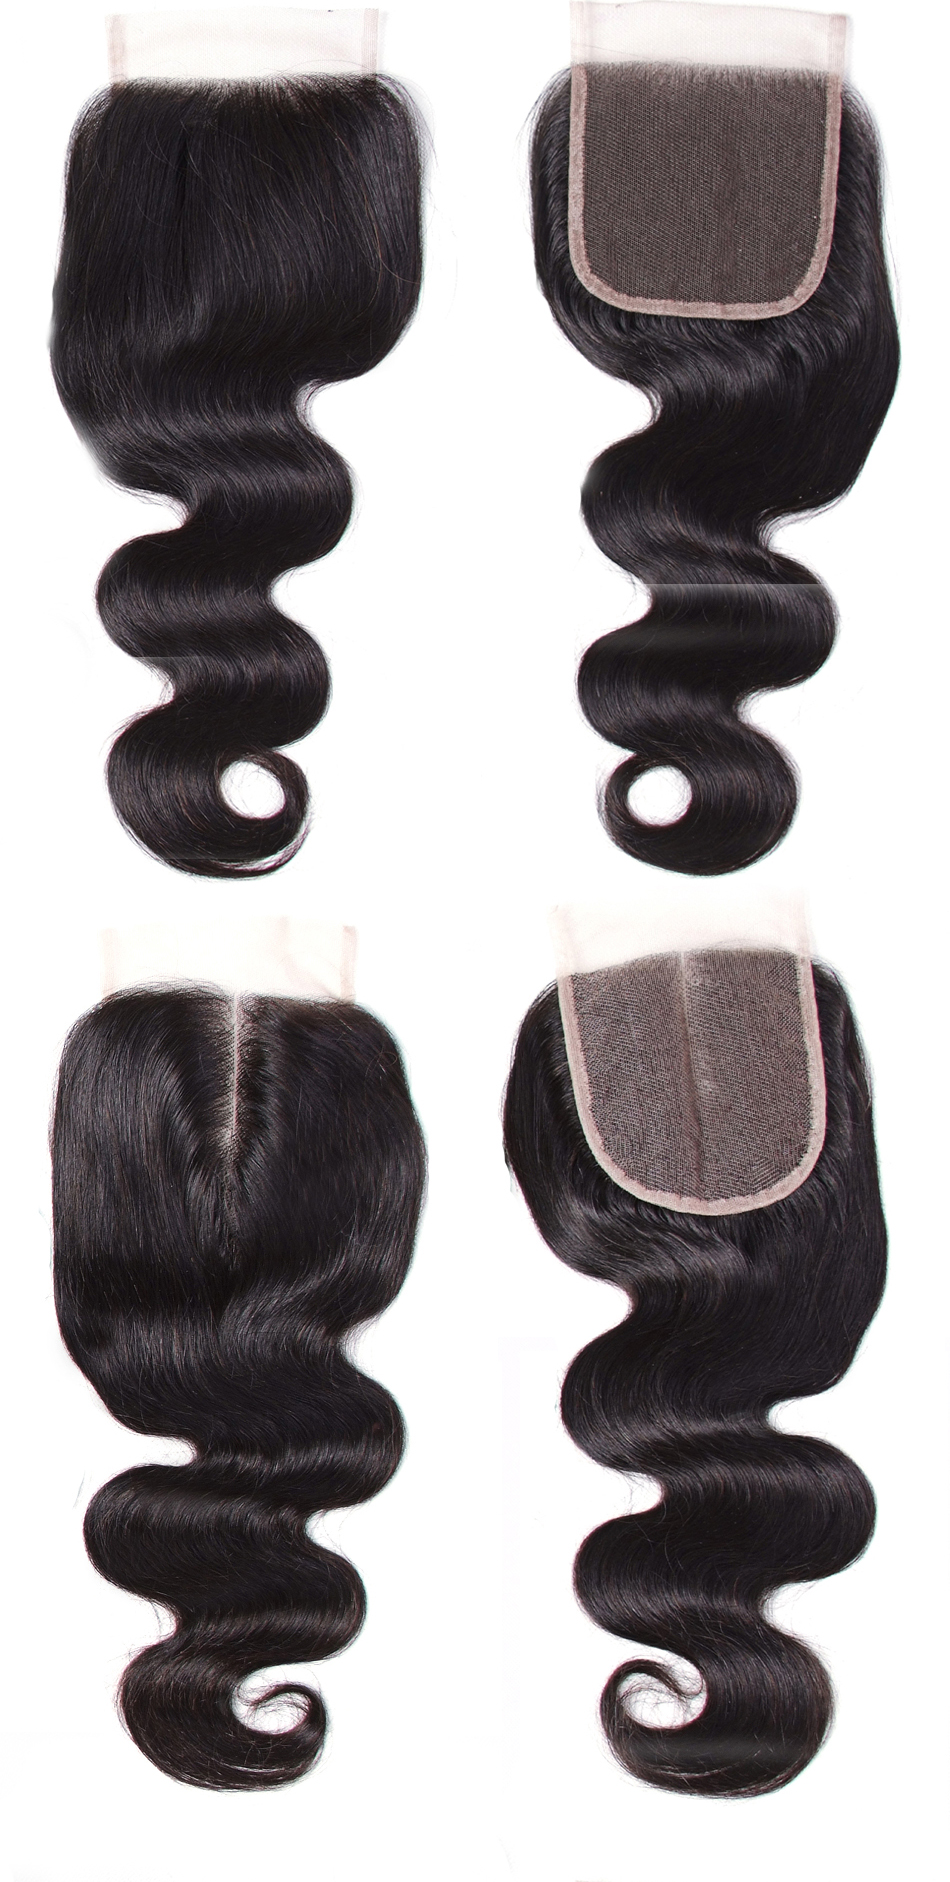 brazilian hair body wave (2)